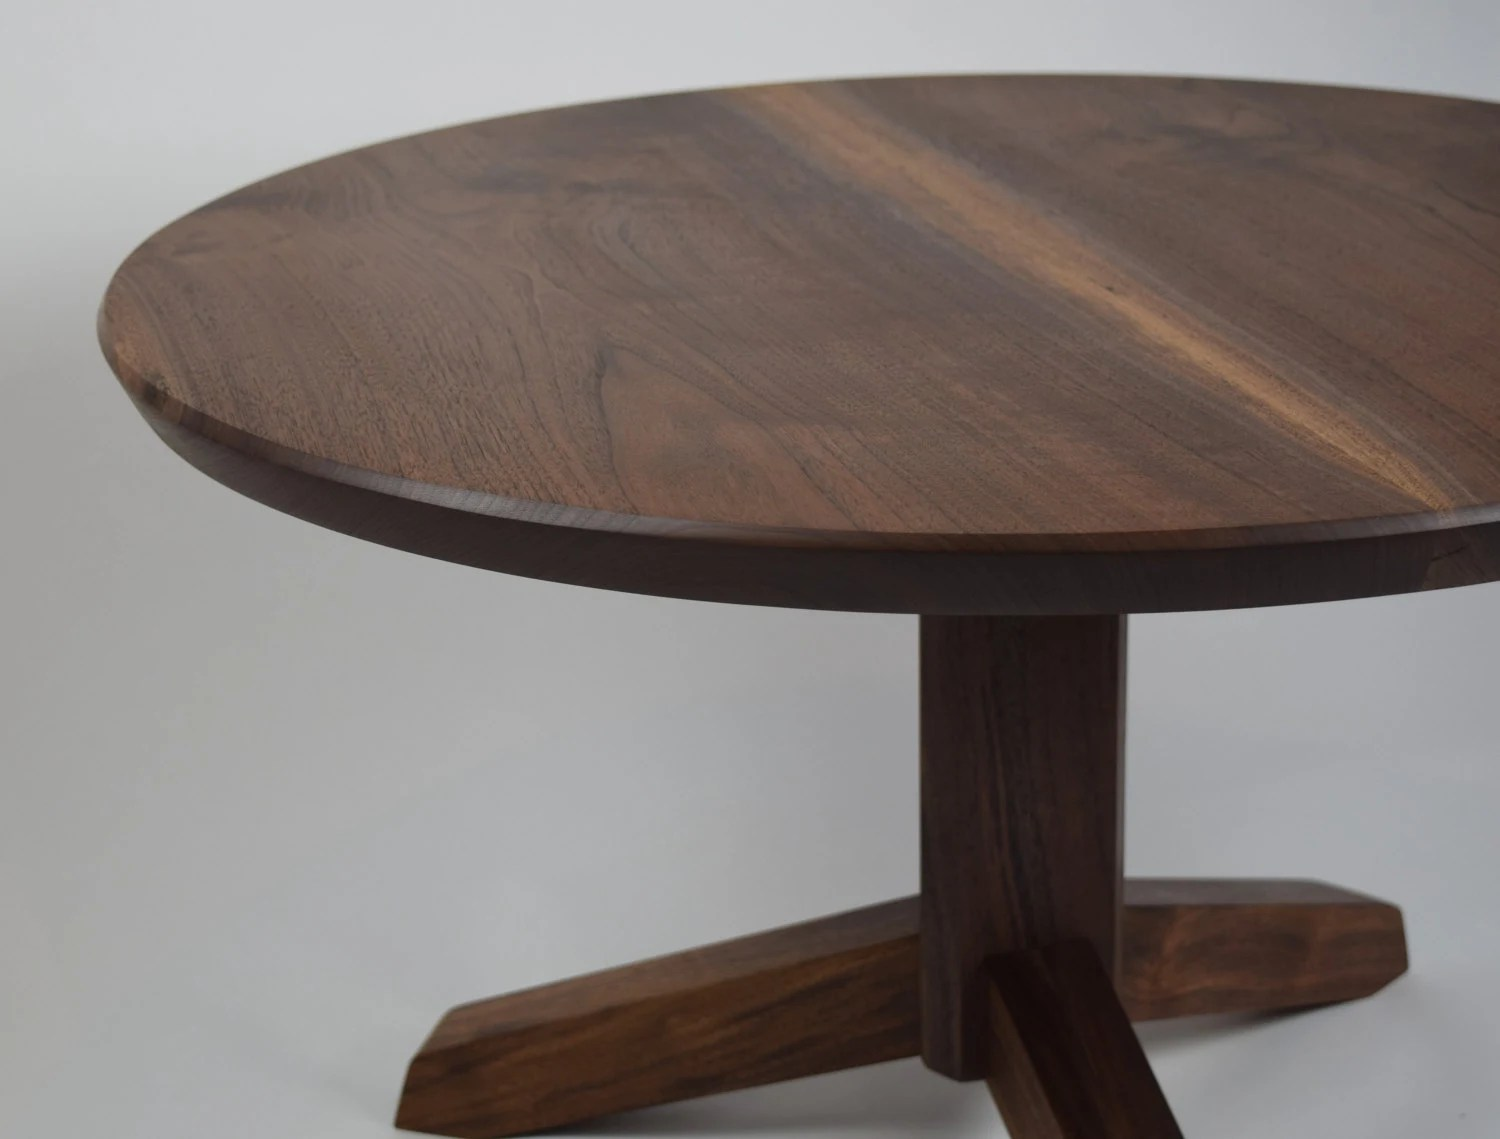 Classic Table Shapes Walnut Coffee Table Round Pedestal Base Coffee Table